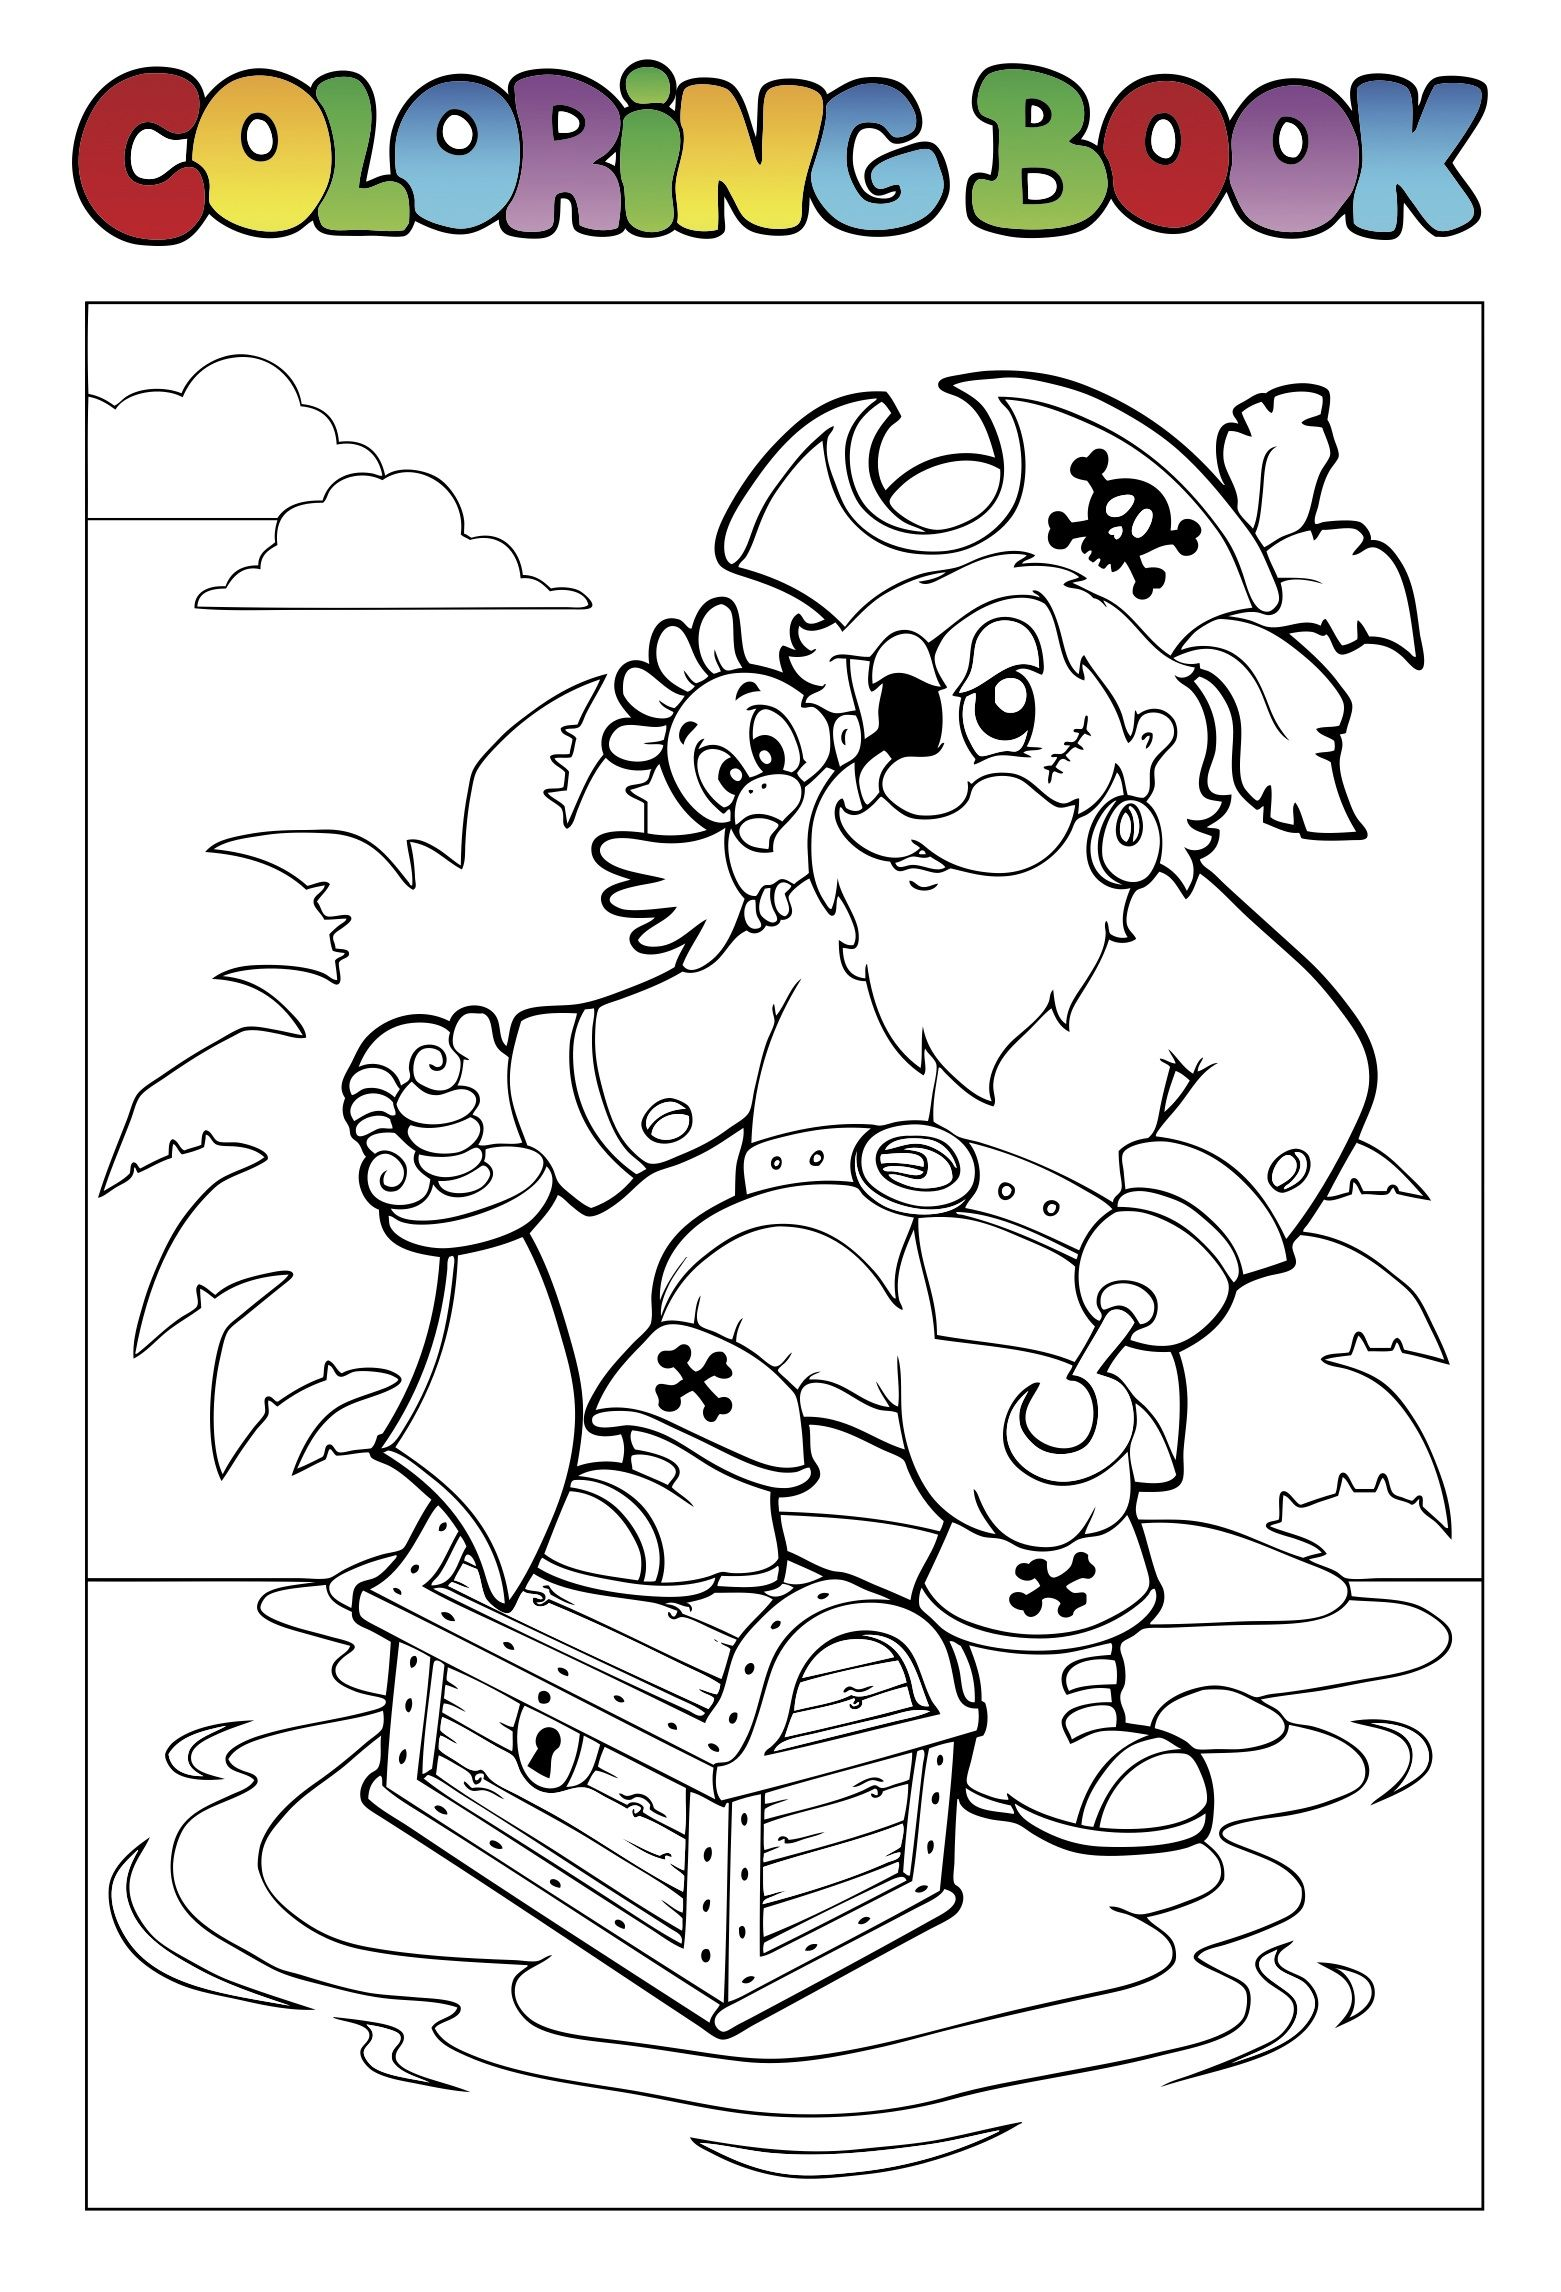 Free Pirate Treasure Chest Coloring Page For Kids